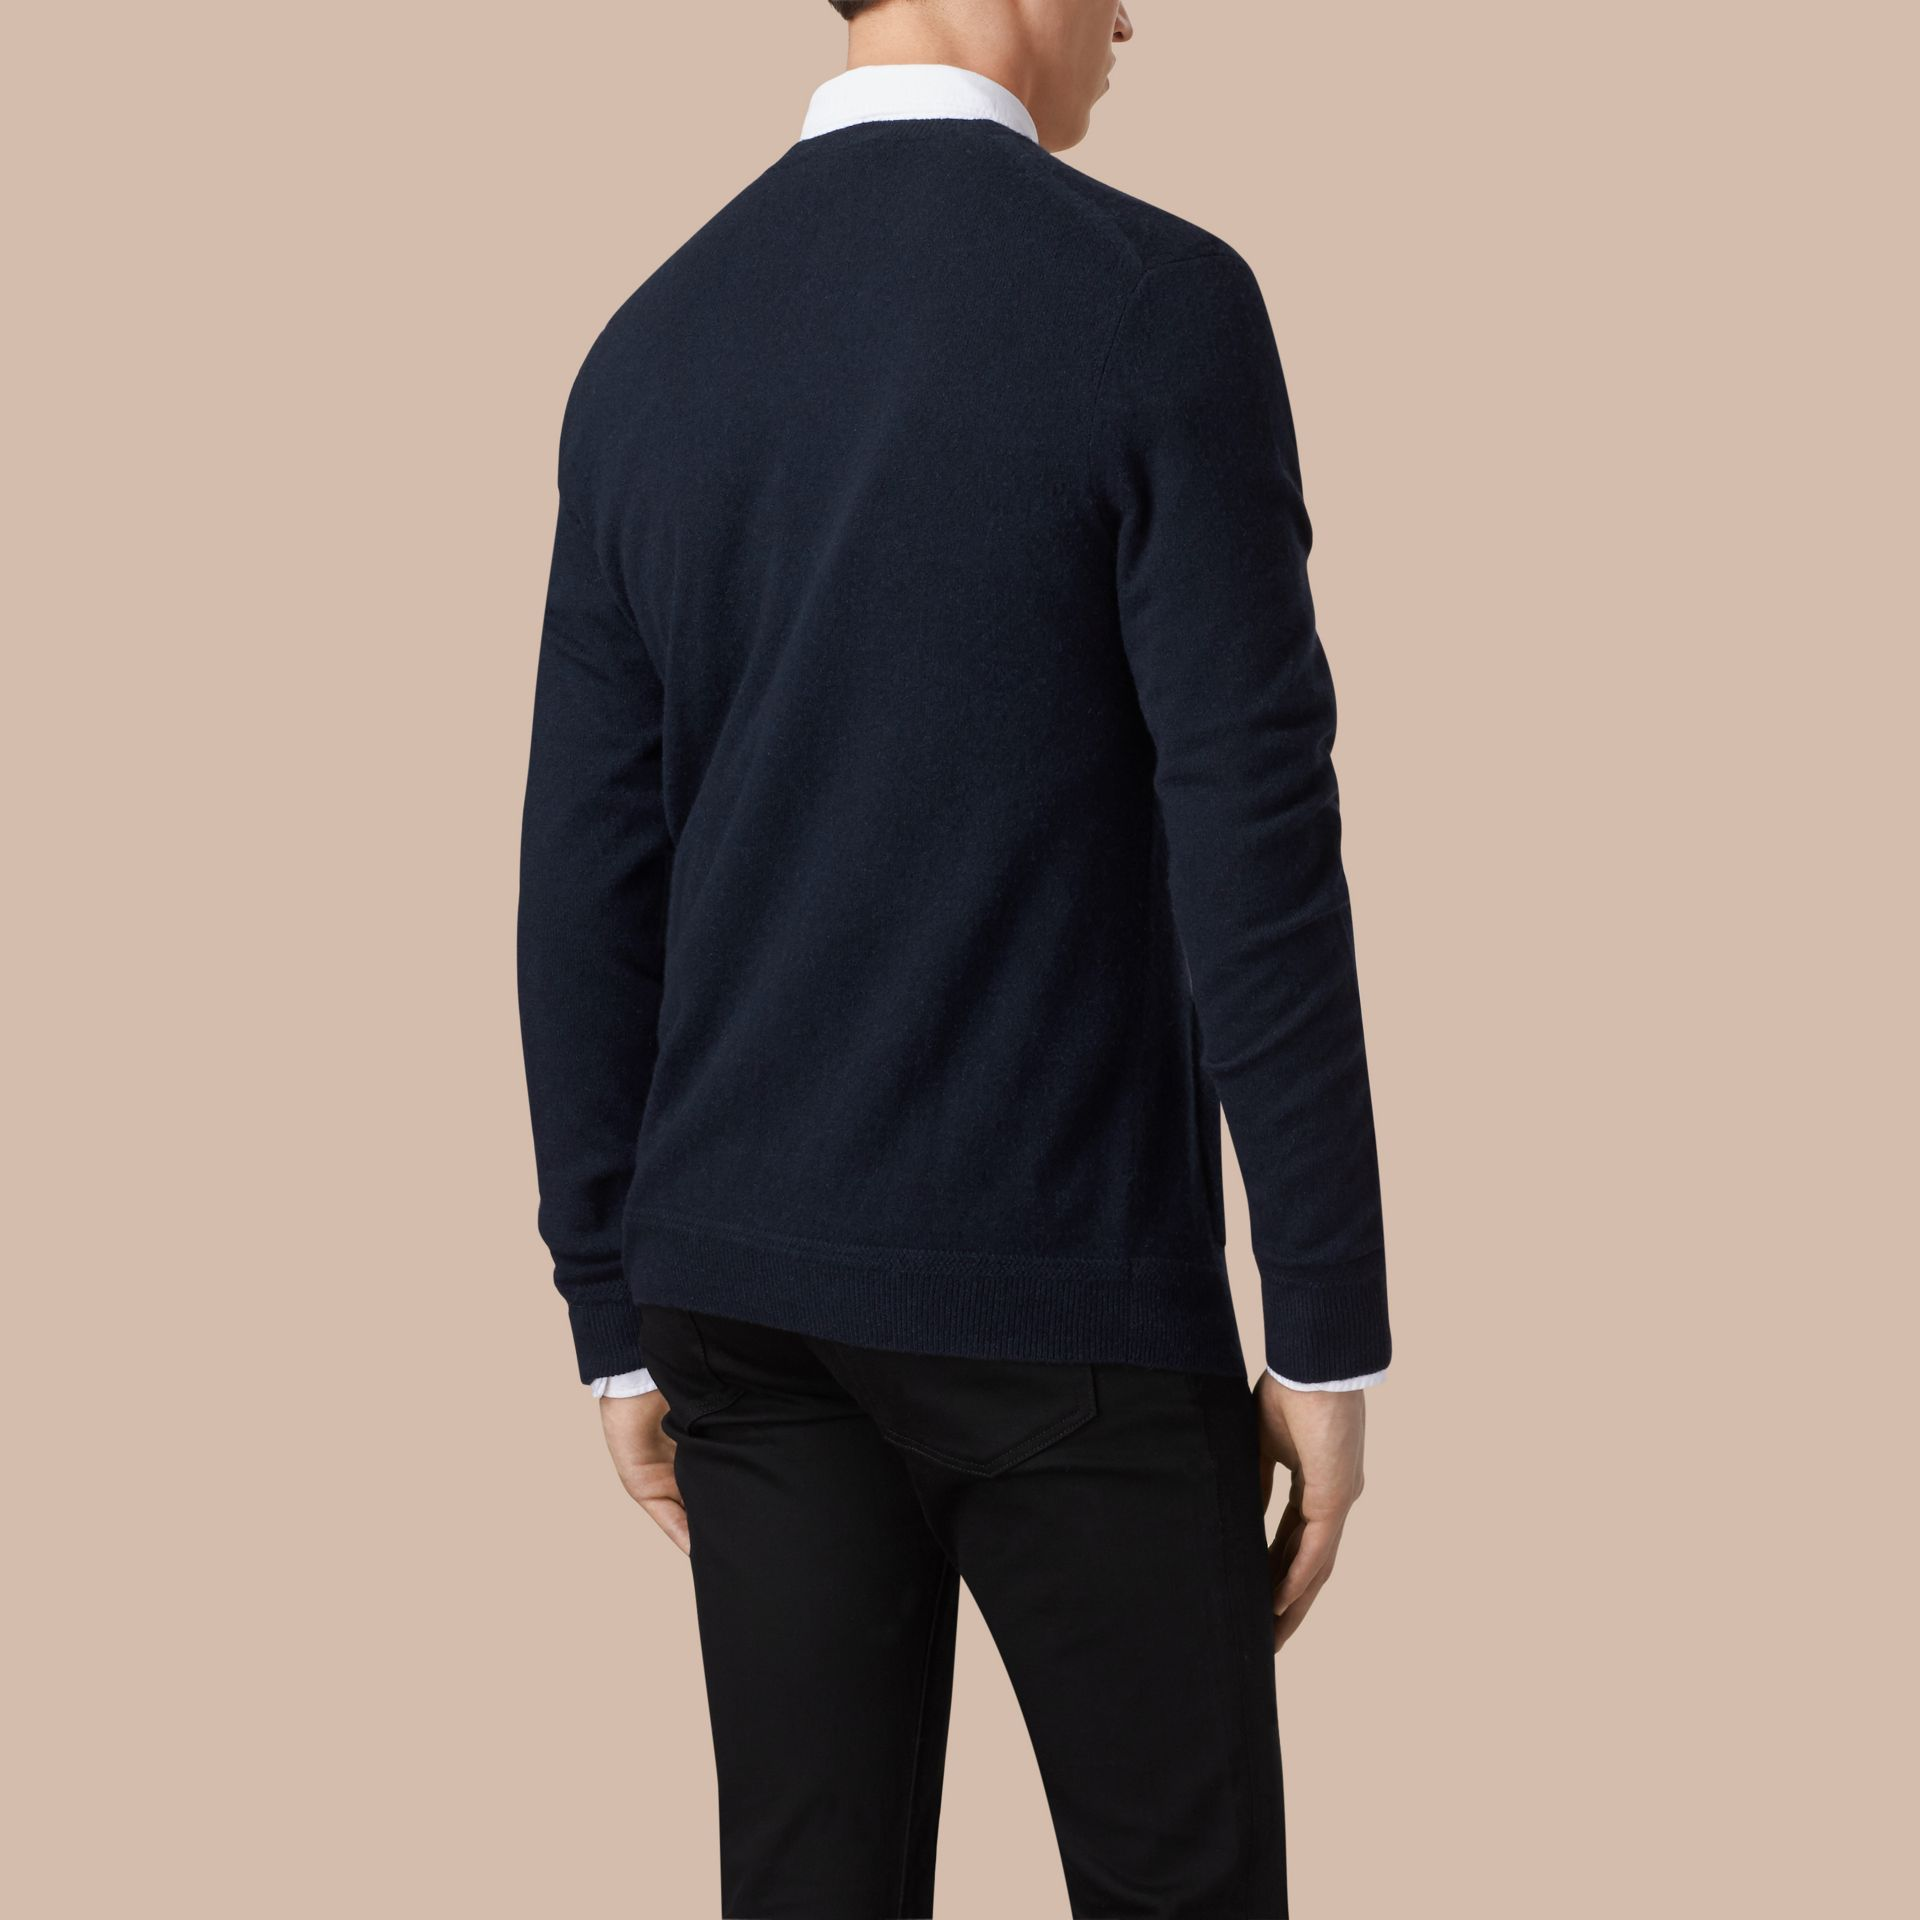 Navy V-Neck Cashmere Cardigan Navy - gallery image 3